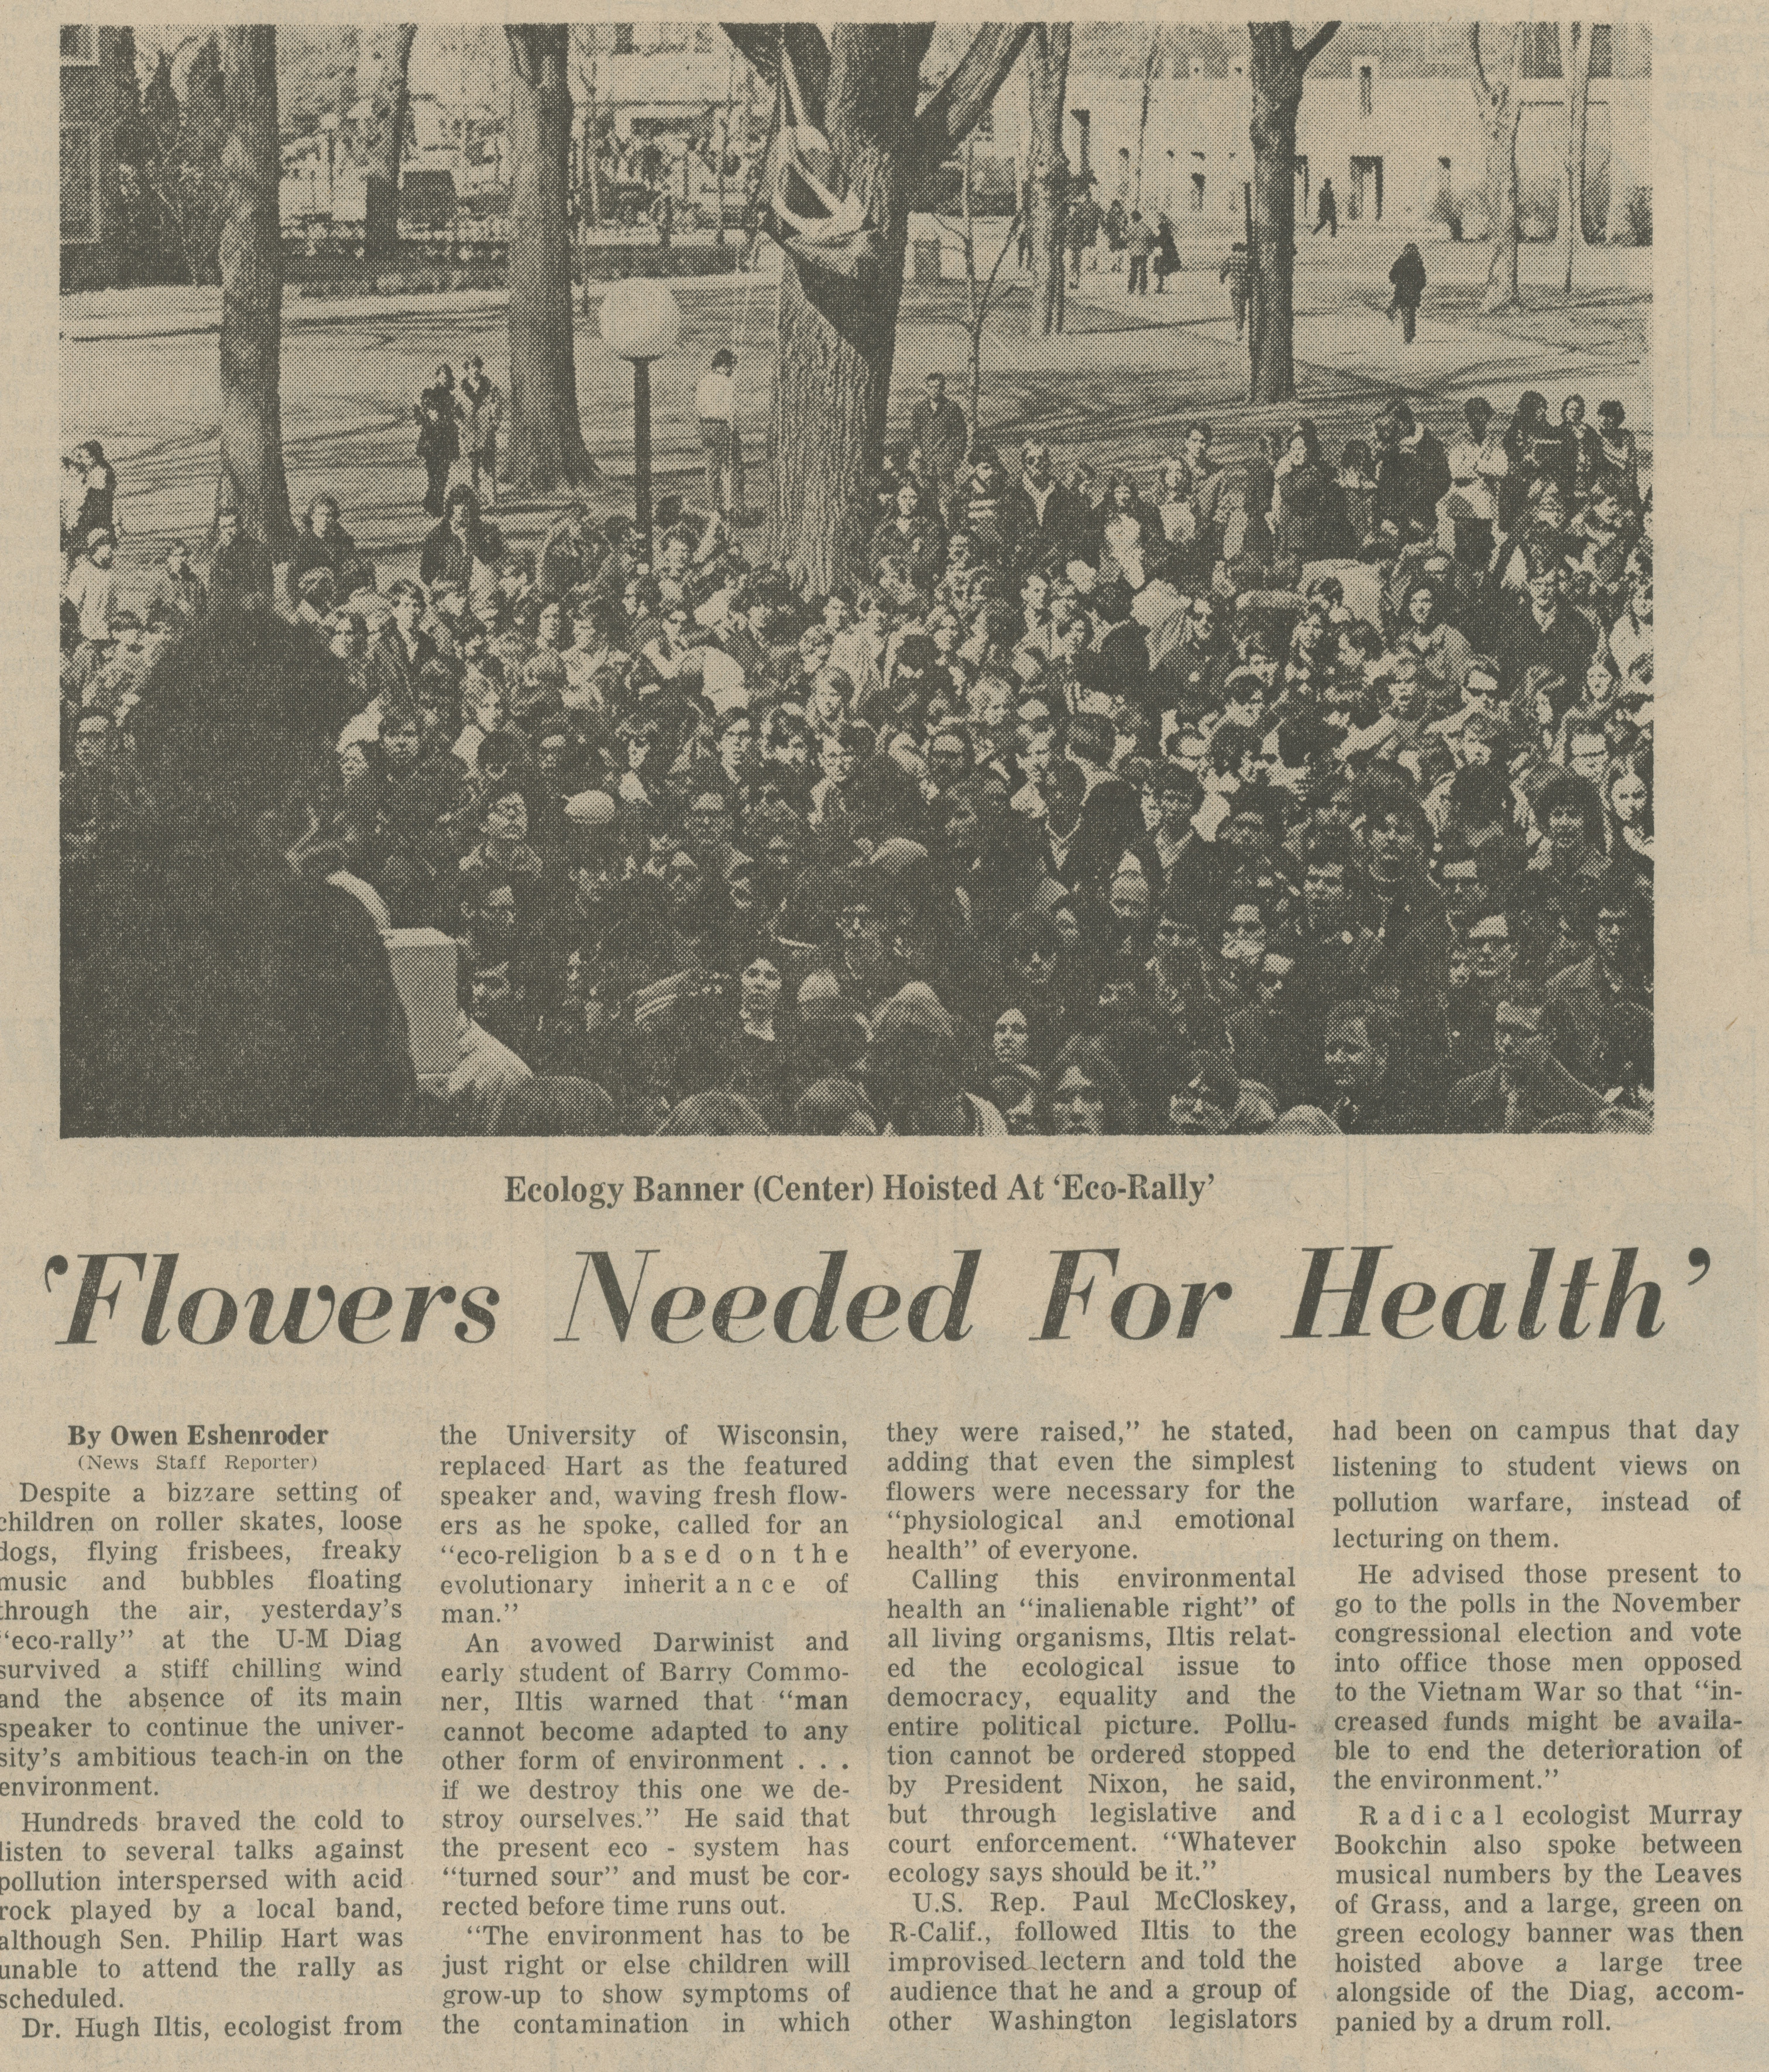 'Flowers Needed For Health' image